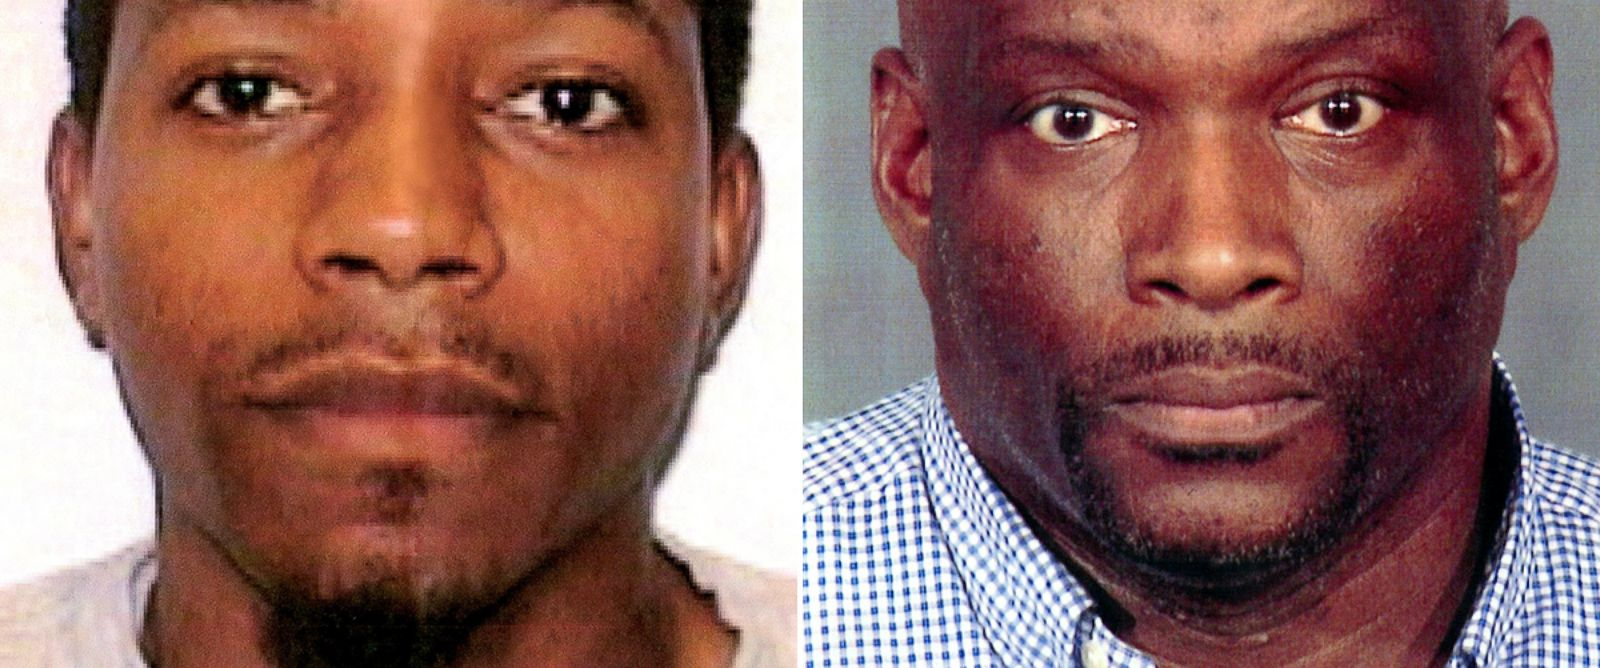 PHOTO: Eugene Harvey, left, and Mark Henry, right, were charged in an alleged gun-smuggling ring that sent weapons from Georgia to New York City on commercial airliners, federal officials said Dec. 23, 2014.